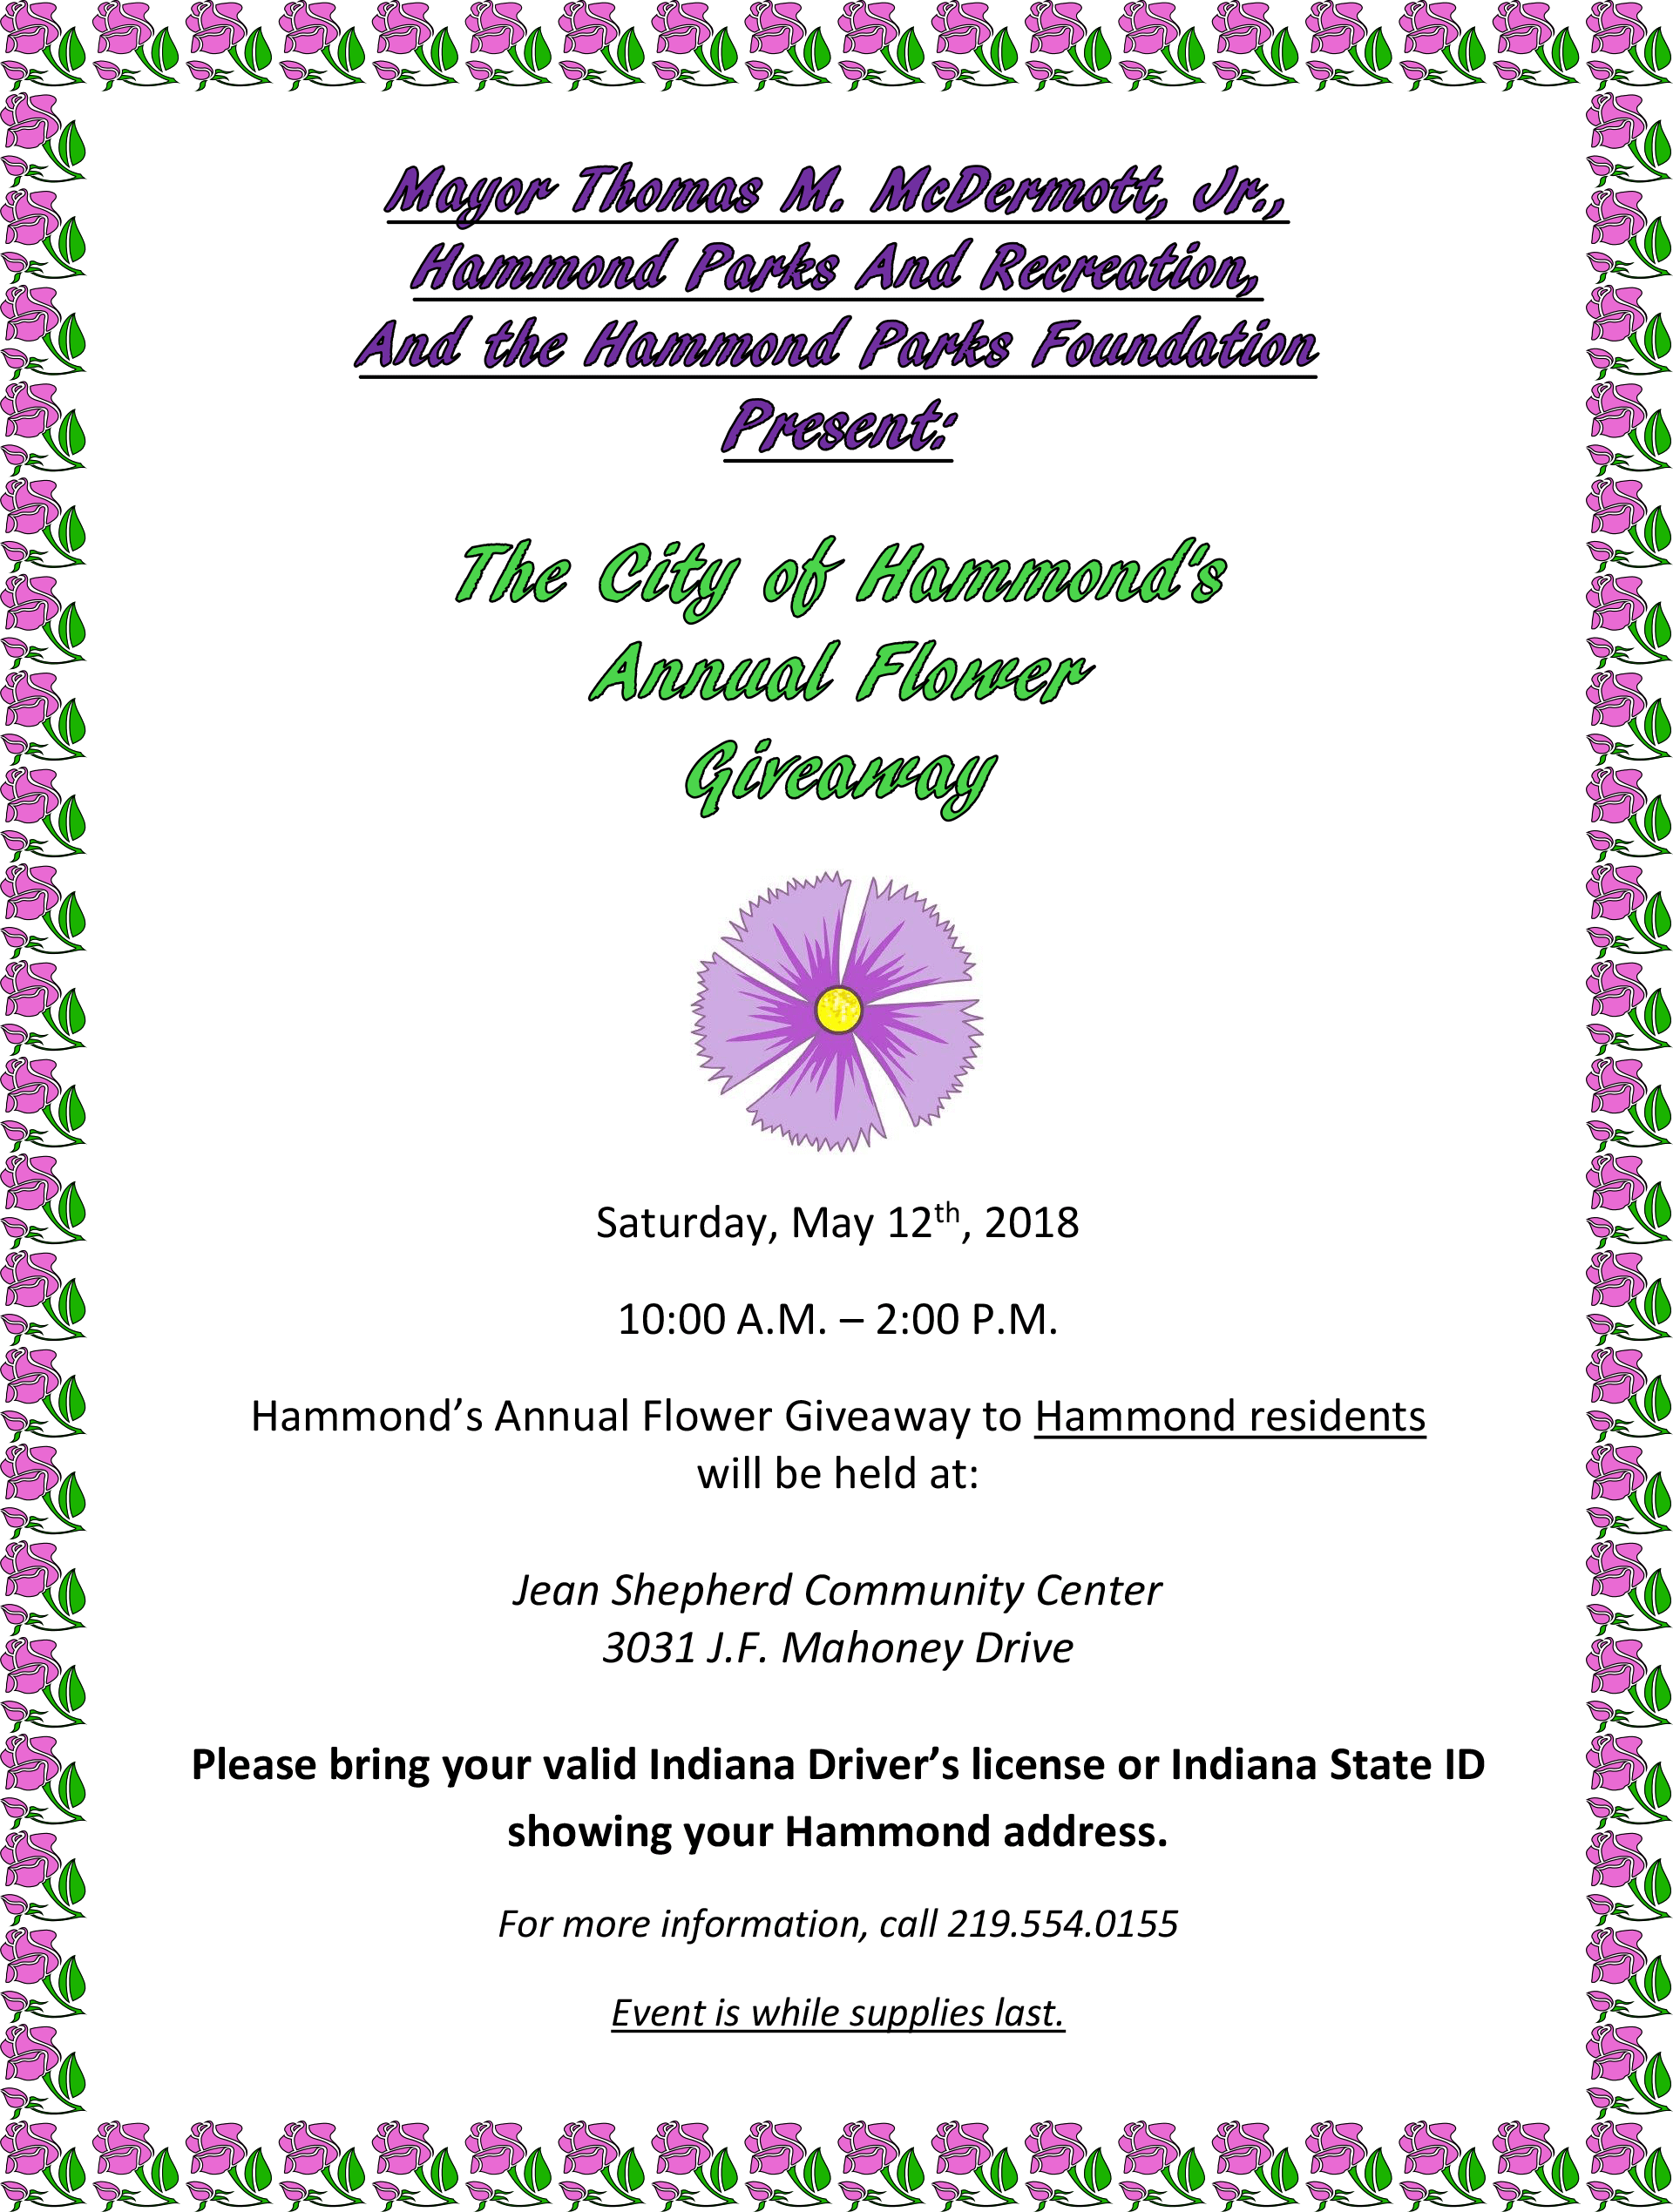 Hammond's 2018 Flower Give Away